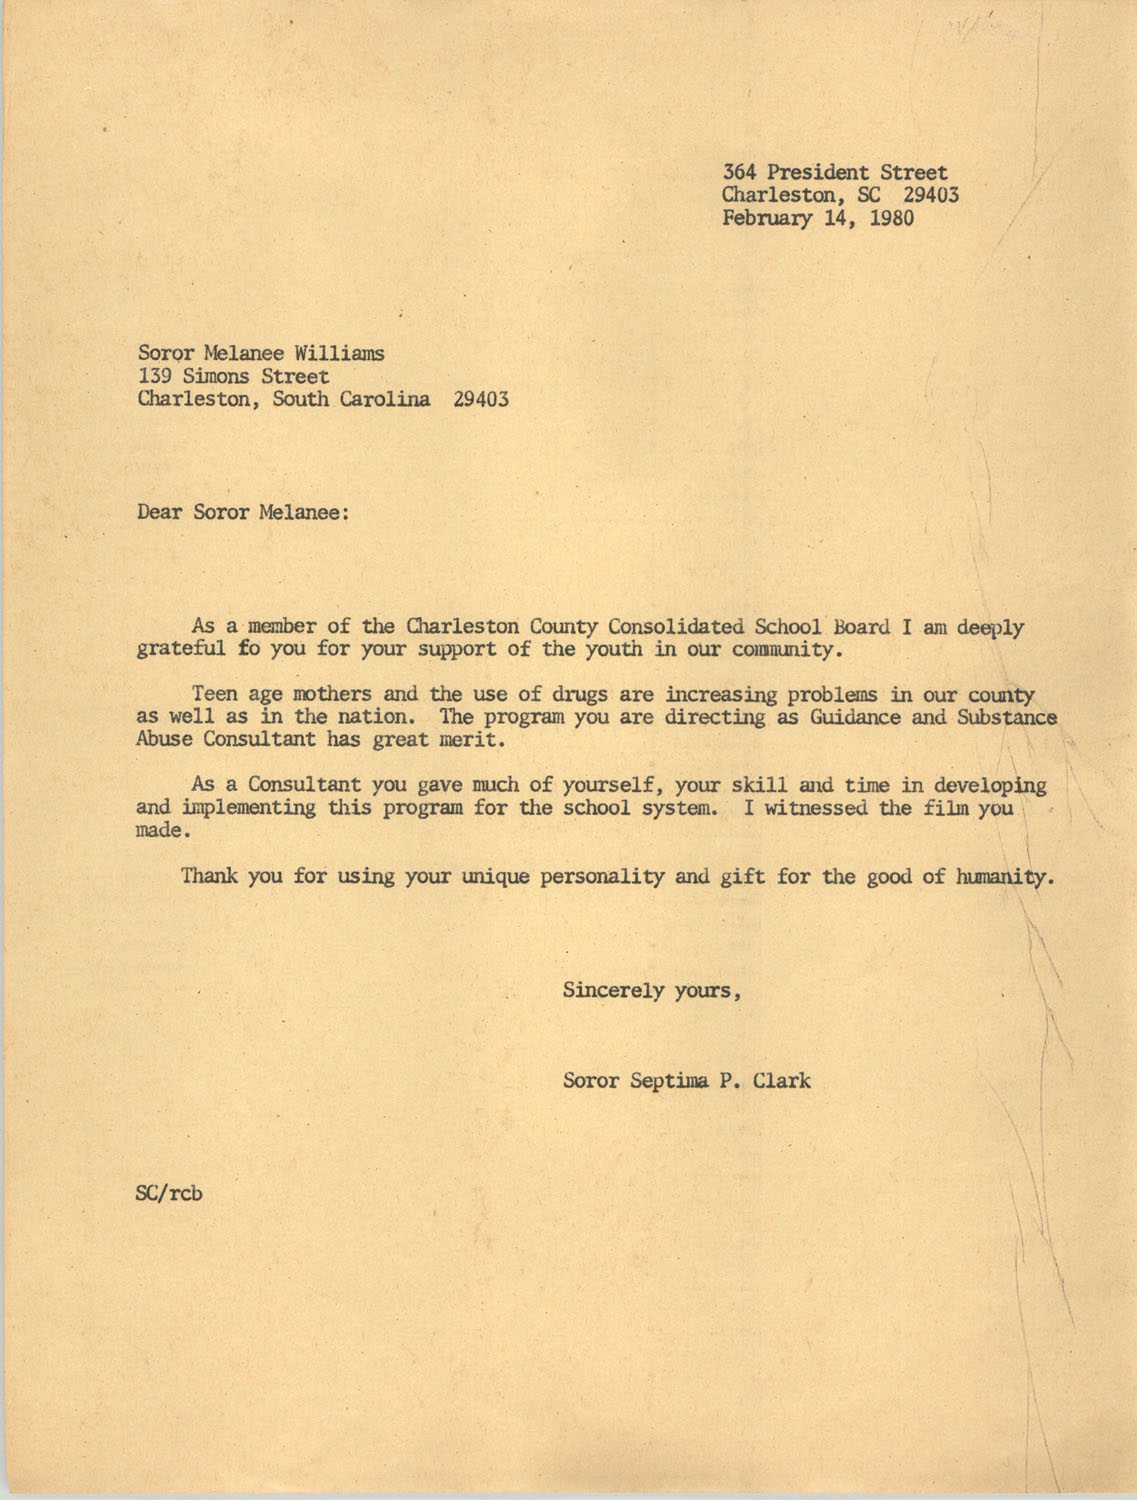 Letter from Septima P. Clark to Melanee Williams, February 14, 1980